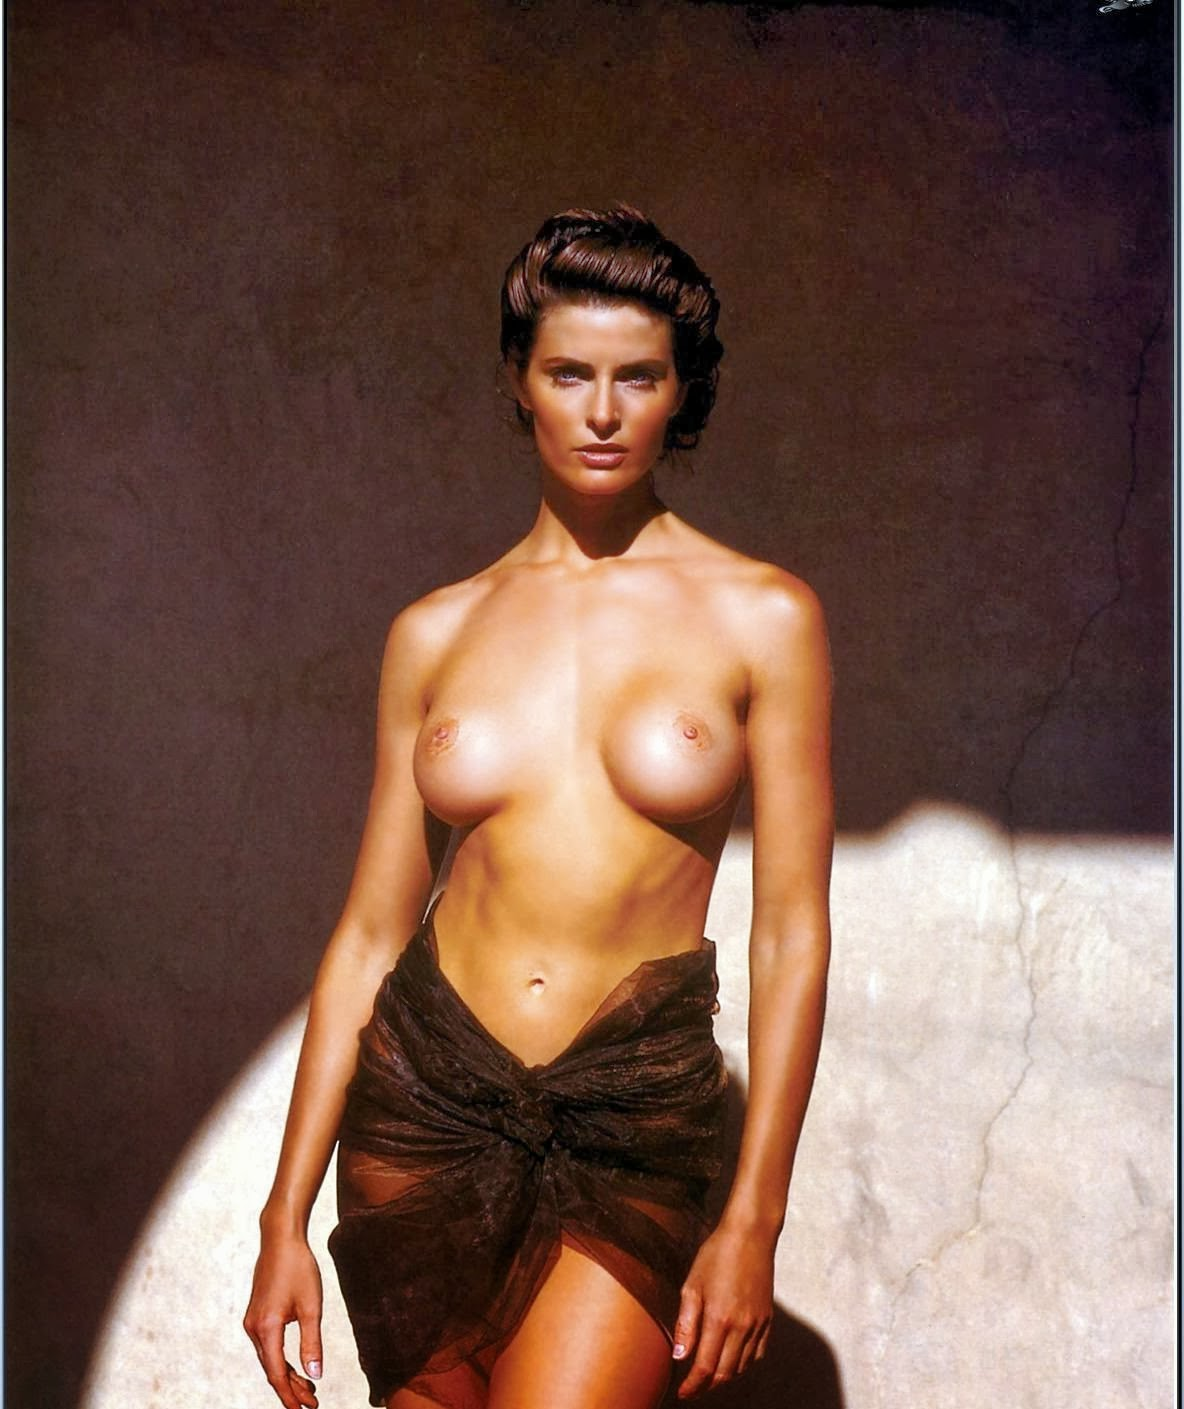 Opinion, Hollywood actress nude full images be